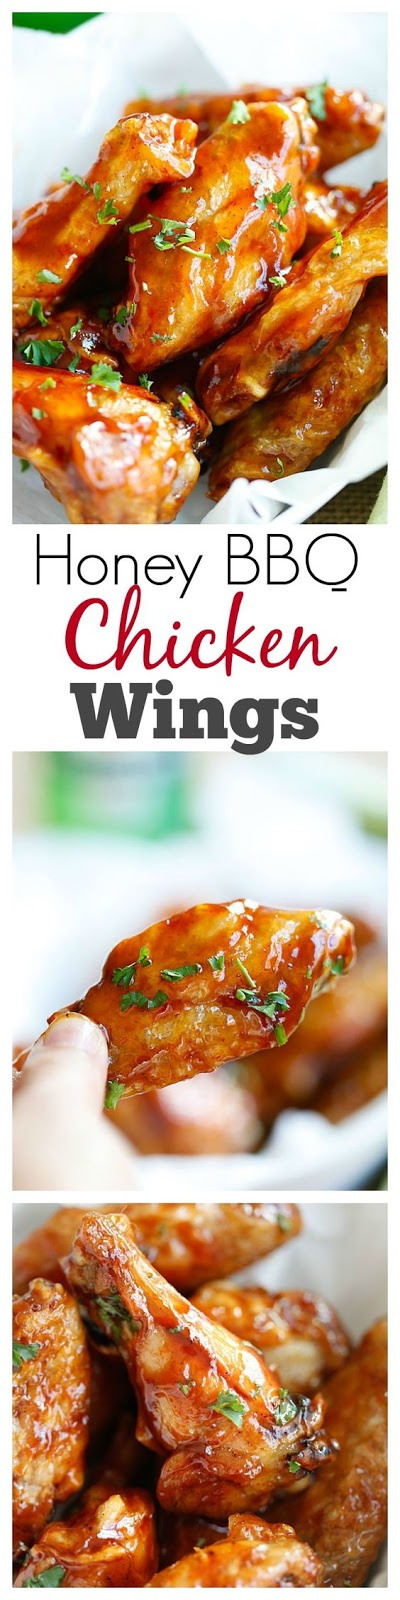 Honey BBQ Chicken Wings Recipe